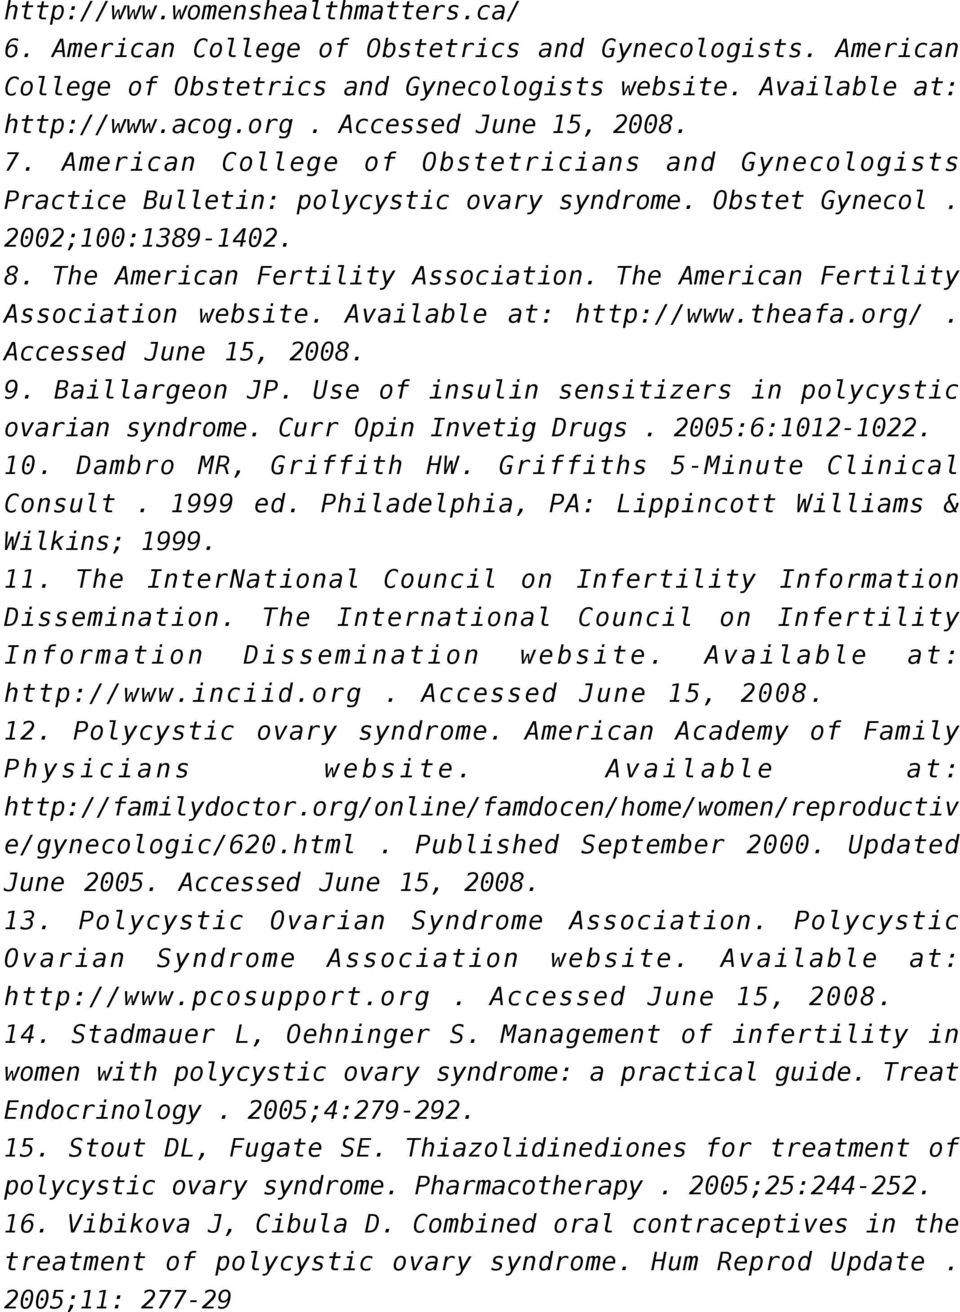 The American Fertility Association website. Available at: http://www.theafa.org/. Accessed June 15, 2008. 9. Baillargeon JP. Use of insulin sensitizers in polycystic ovarian syndrome.